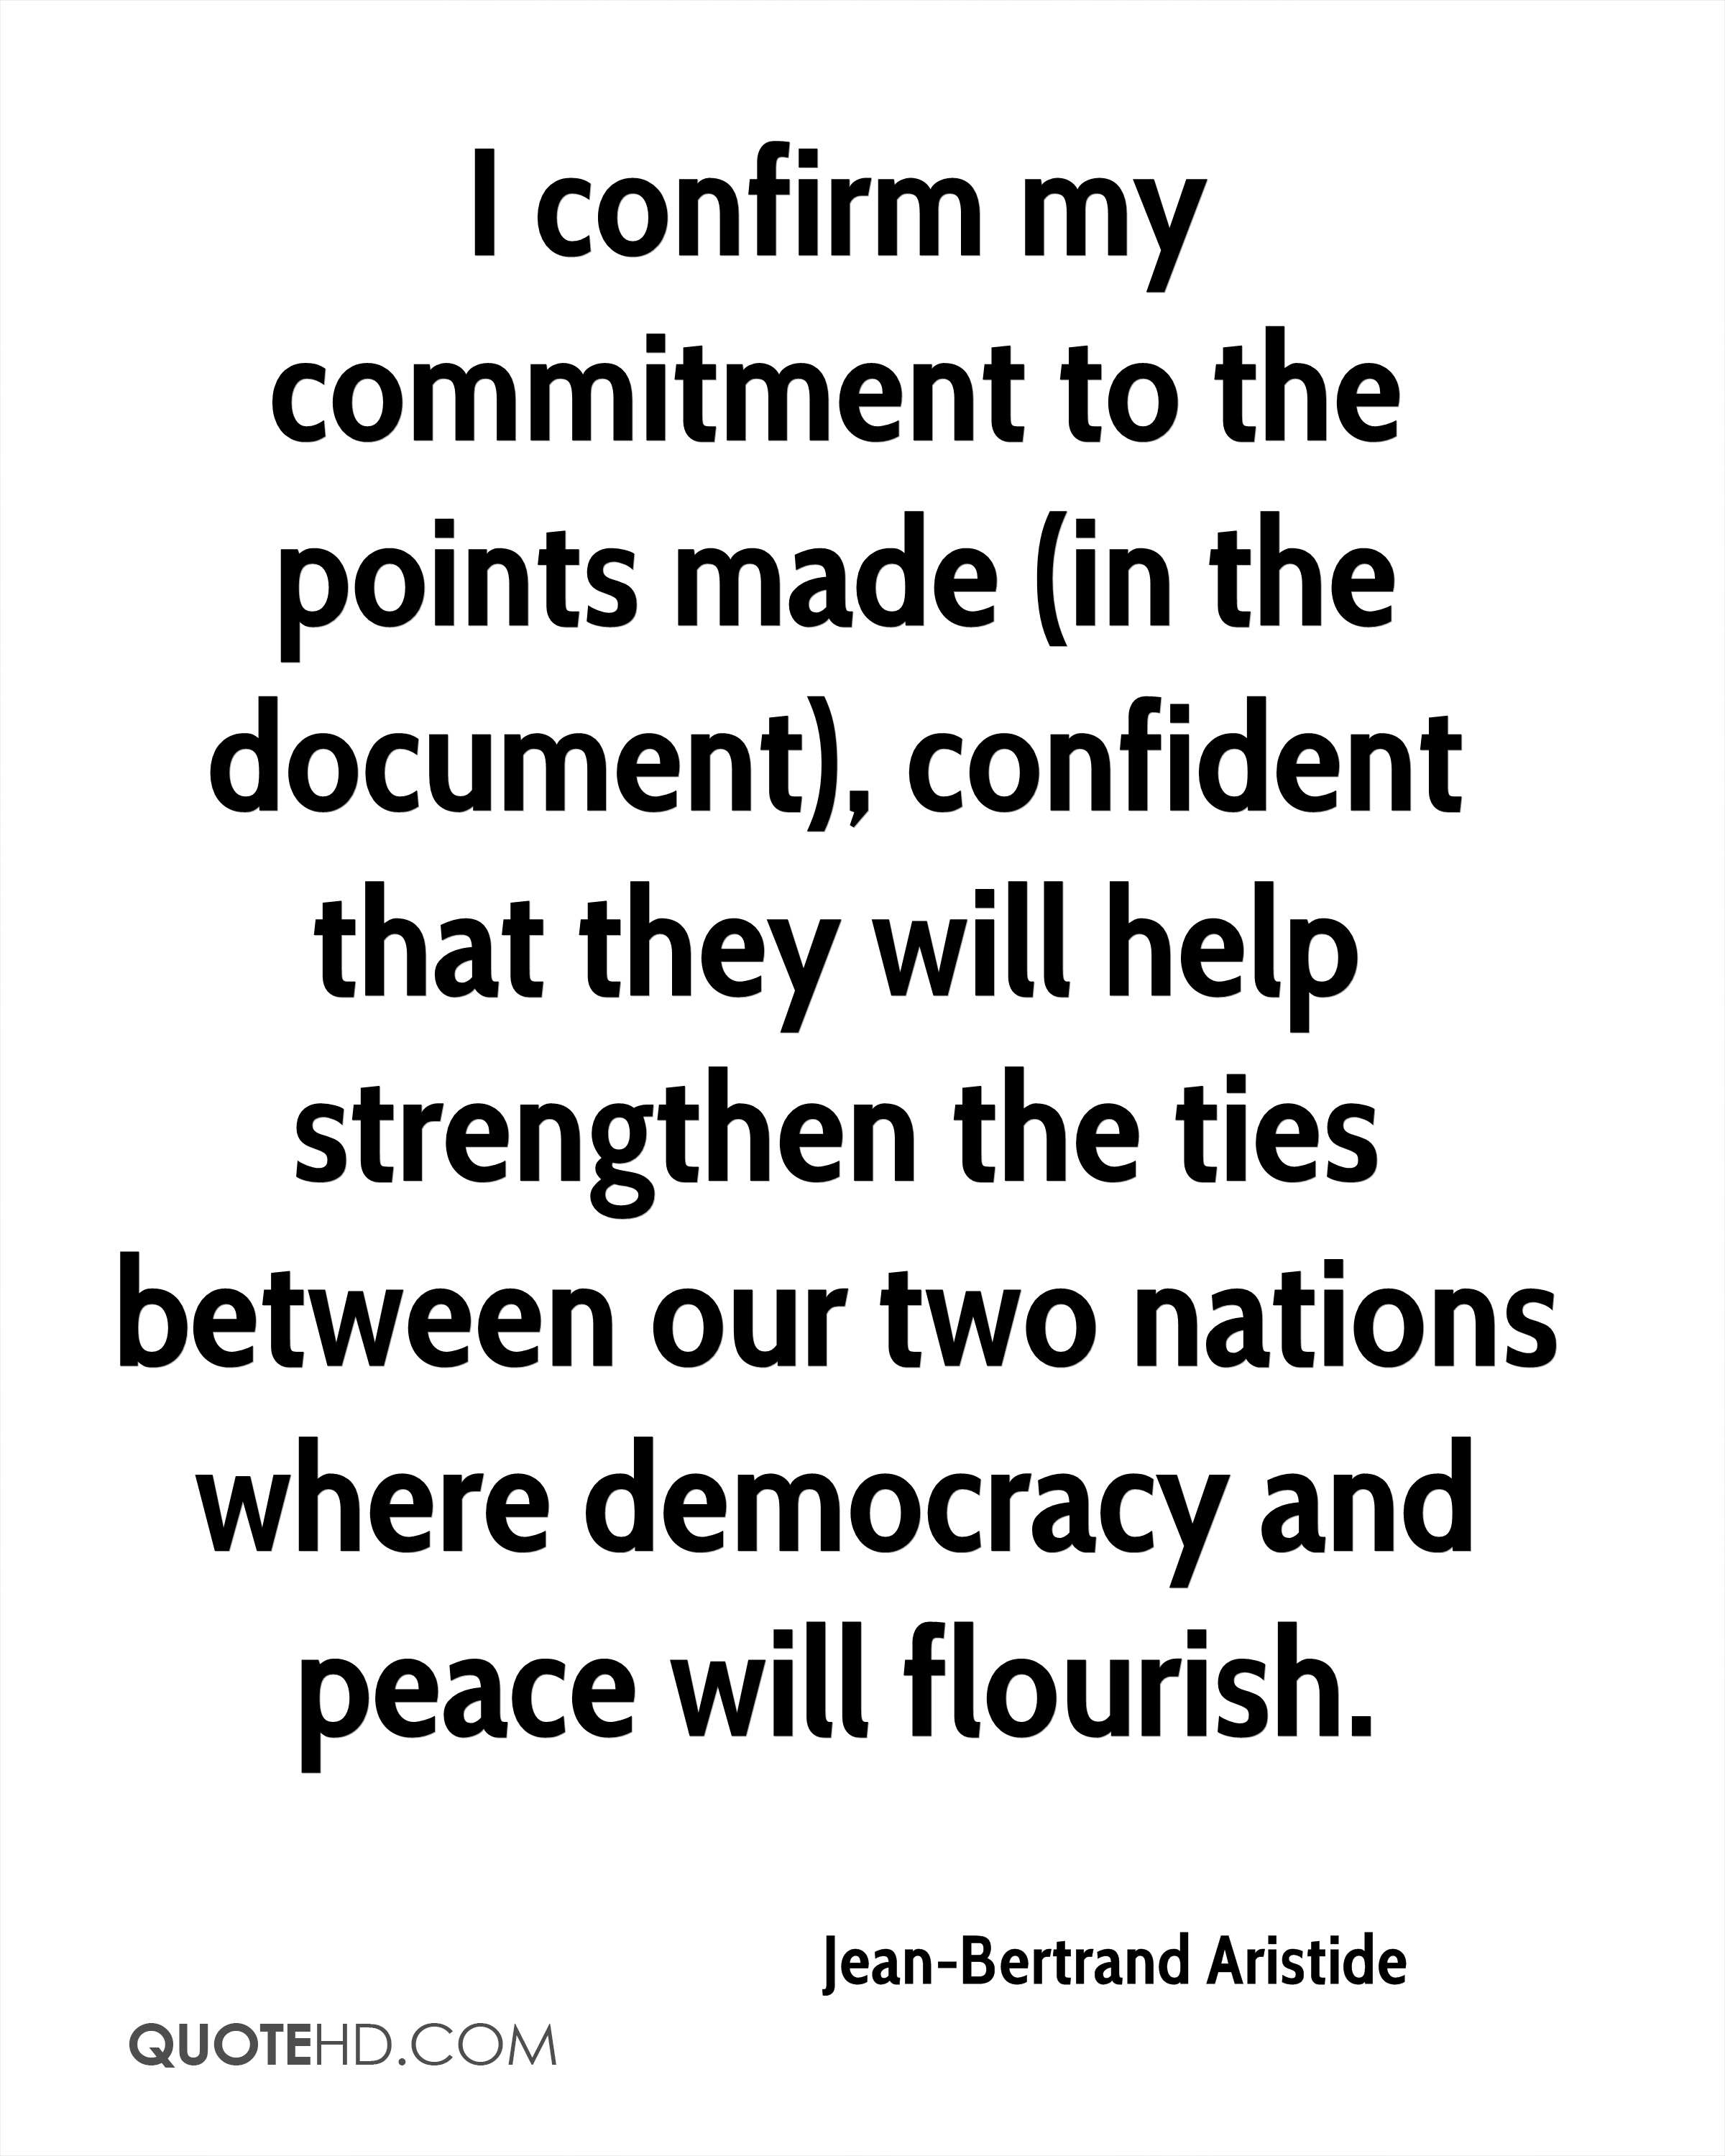 I confirm my commitment to the points made (in the document), confident that they will help strengthen the ties between our two nations where democracy and peace will flourish.